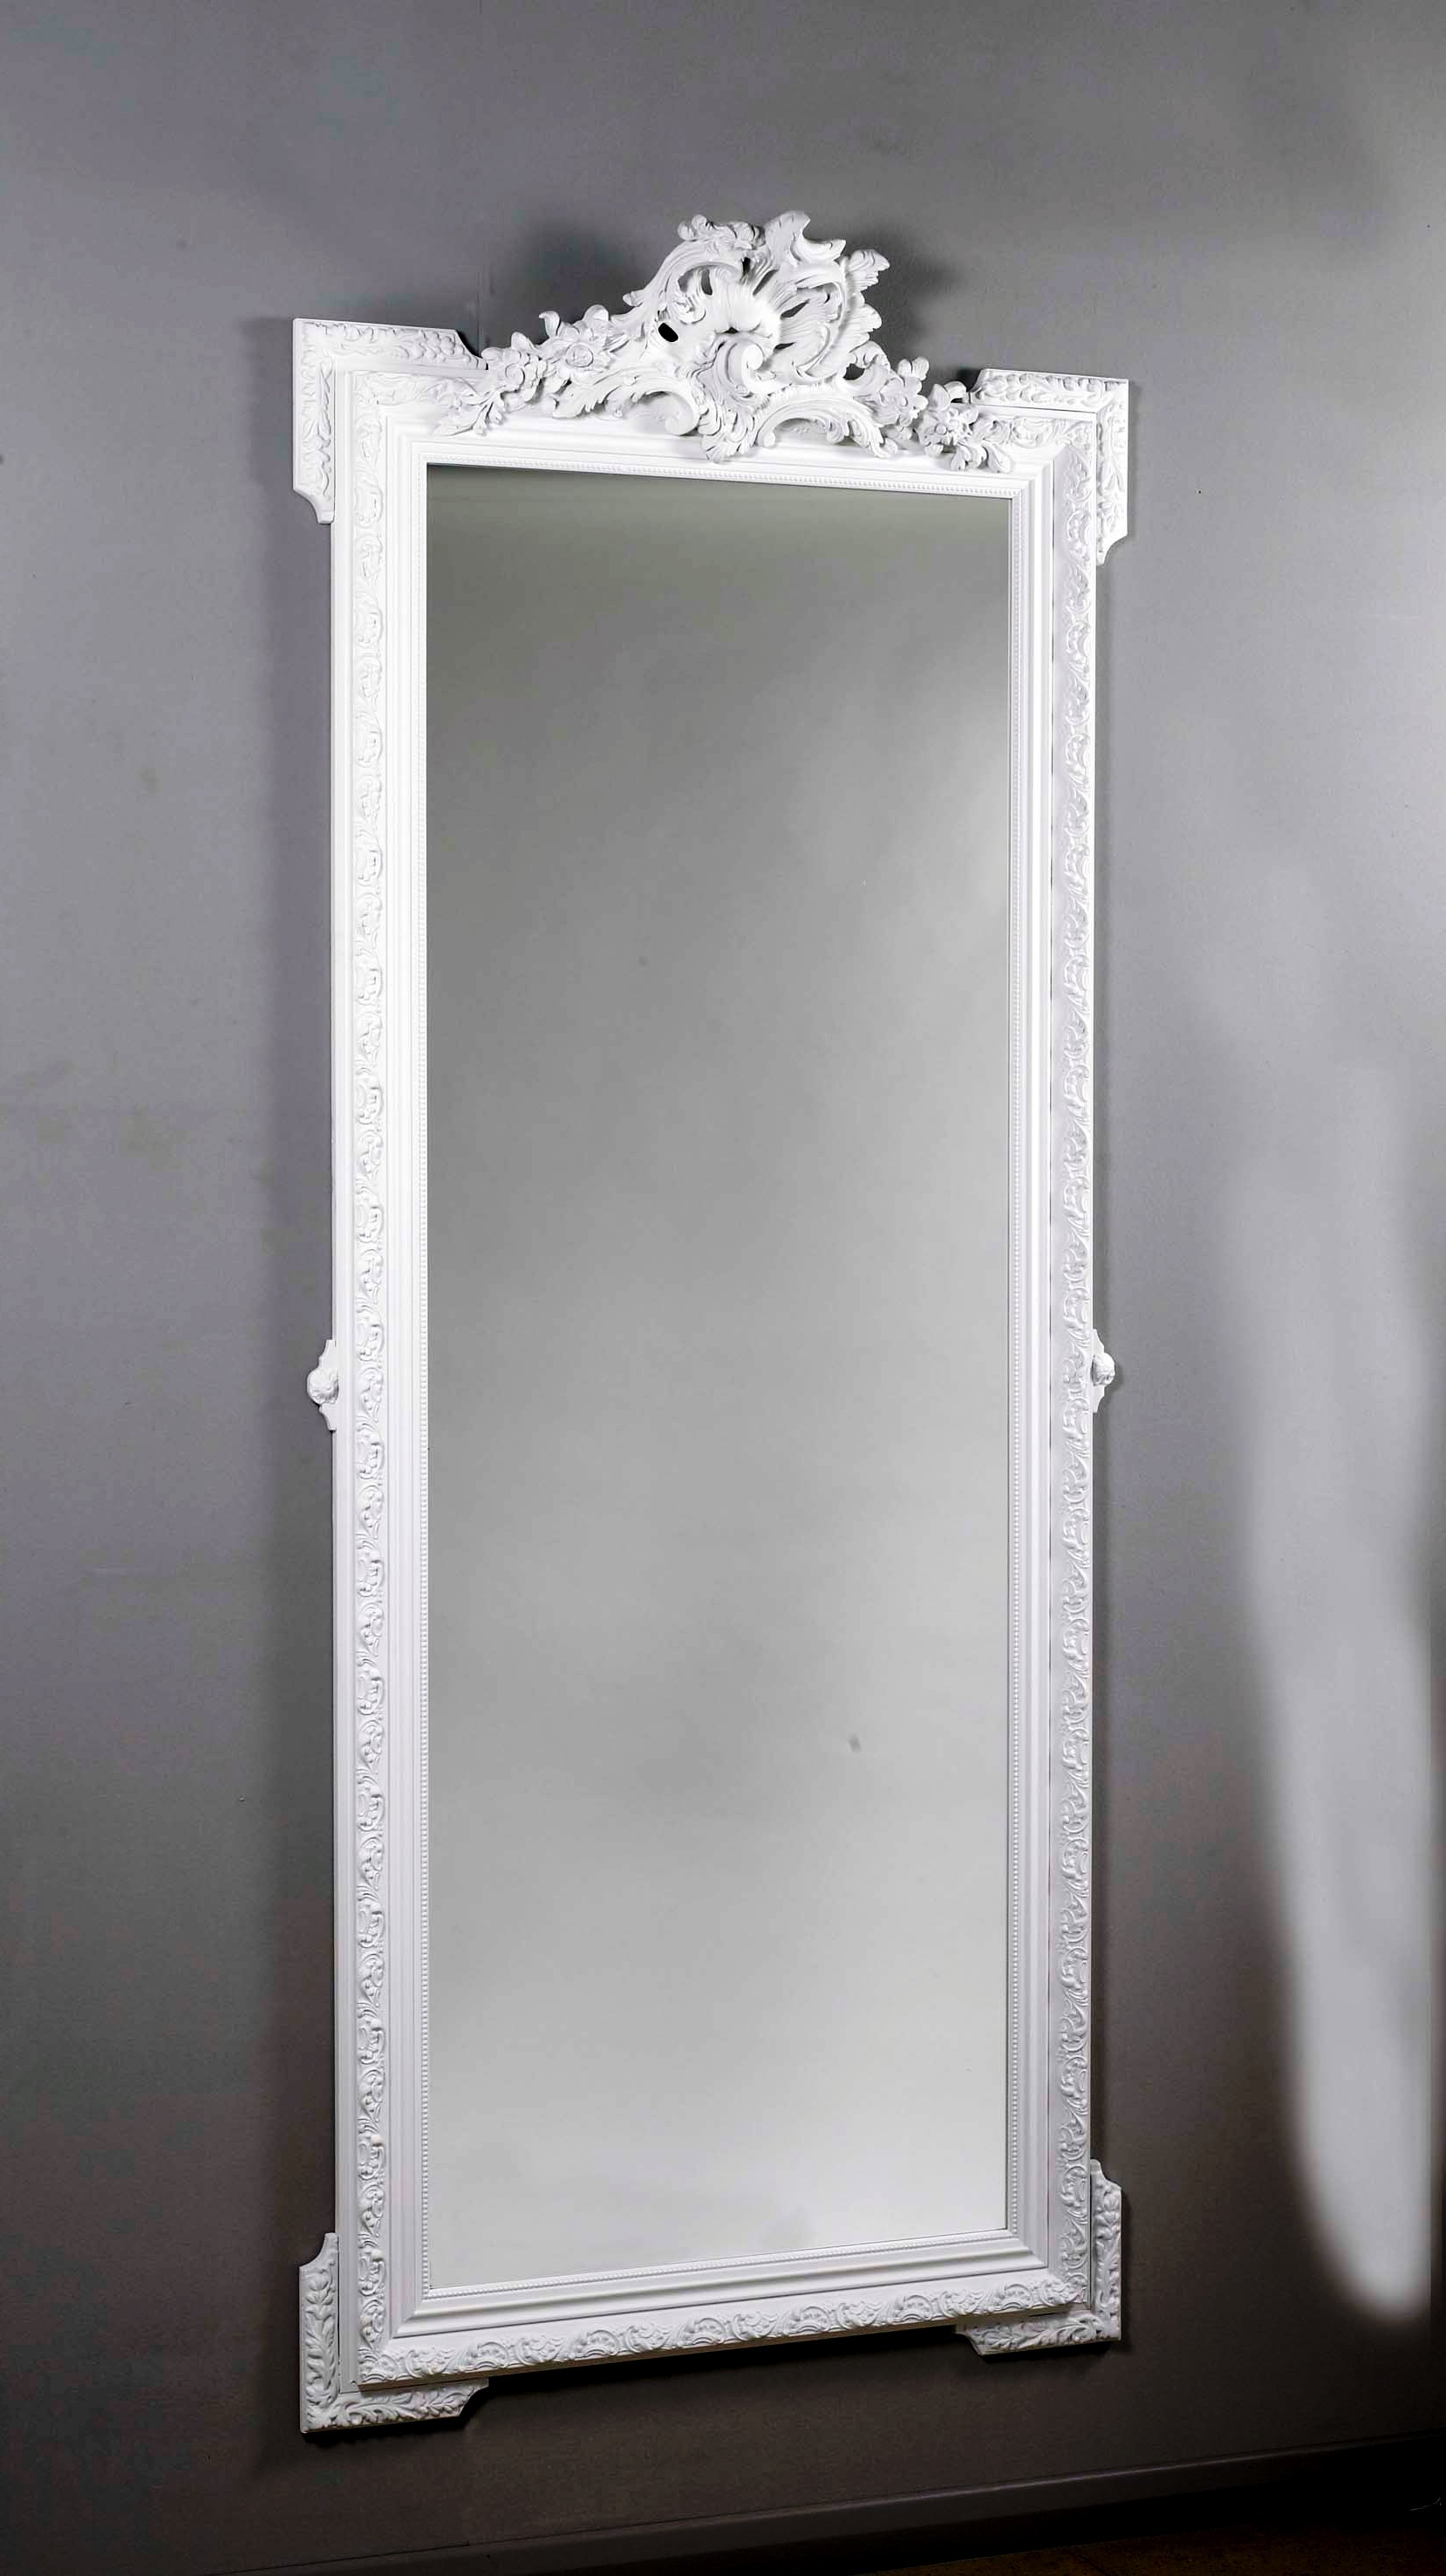 Romantica Grande White Wall Mirror Canciones Romanticas En Espanol Intended For Most Recent Decorative Full Length Wall Mirrors (View 15 of 20)